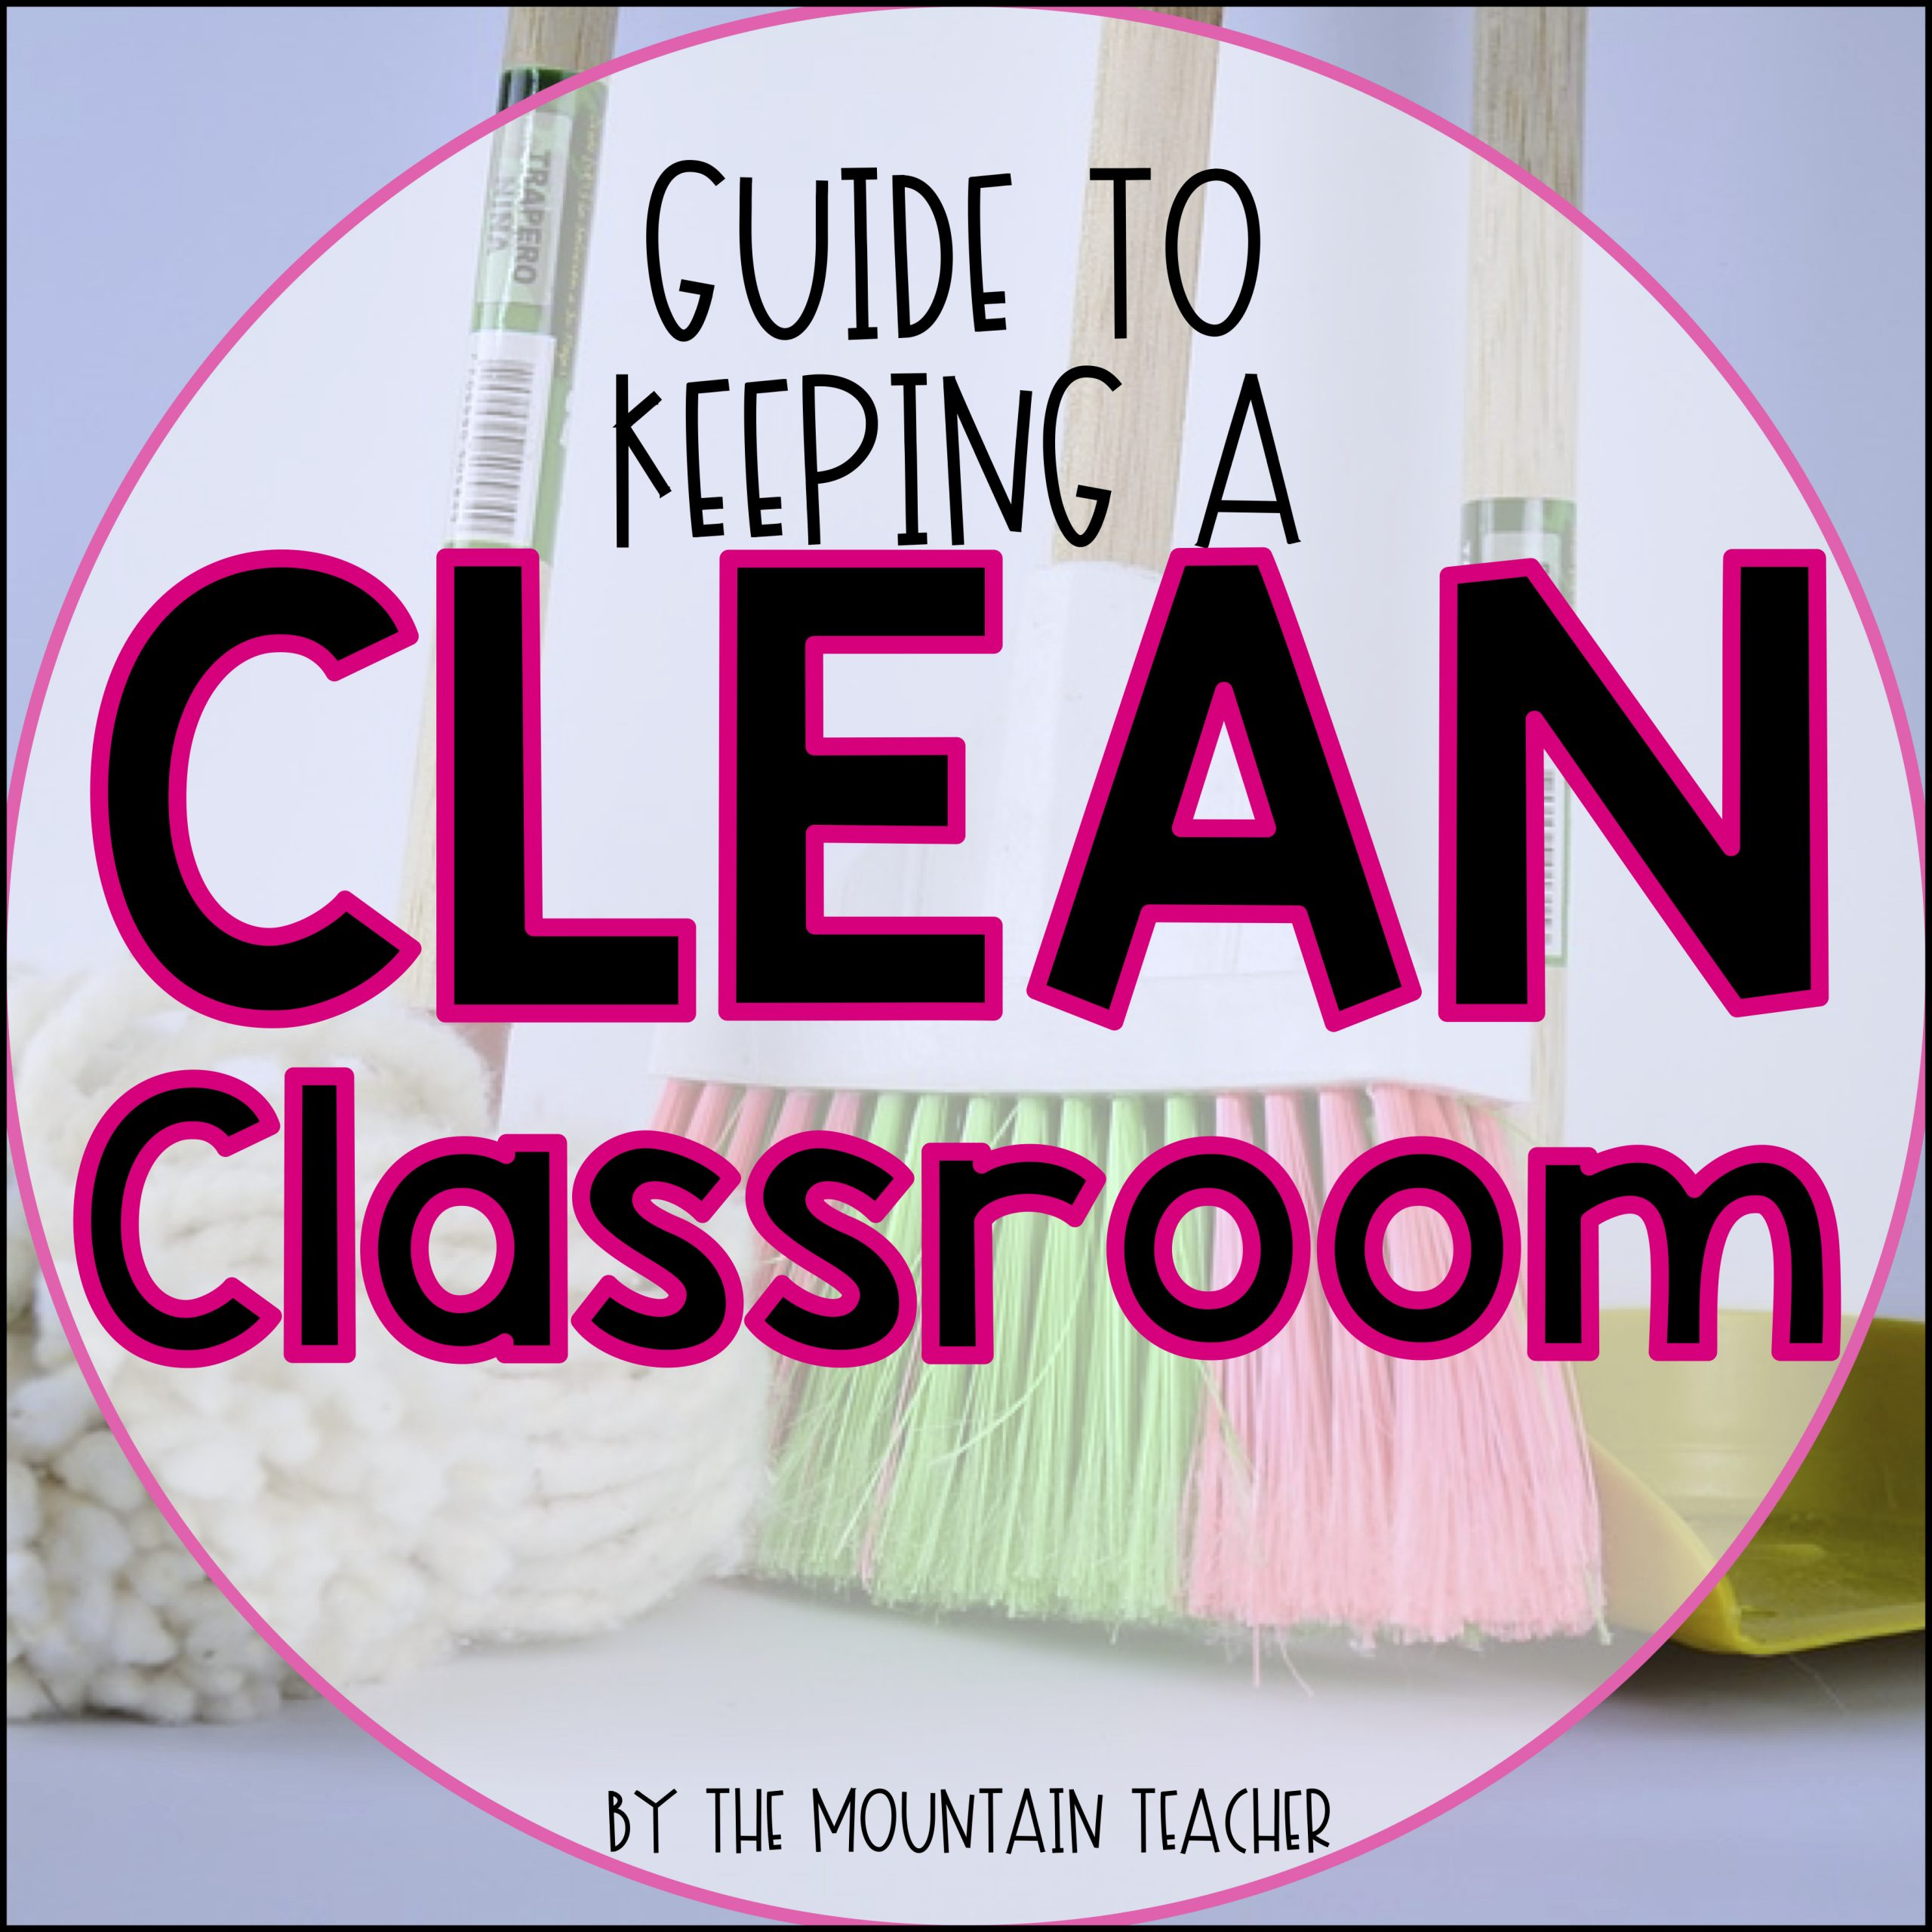 Guide to keeping a clean elementary school classroom